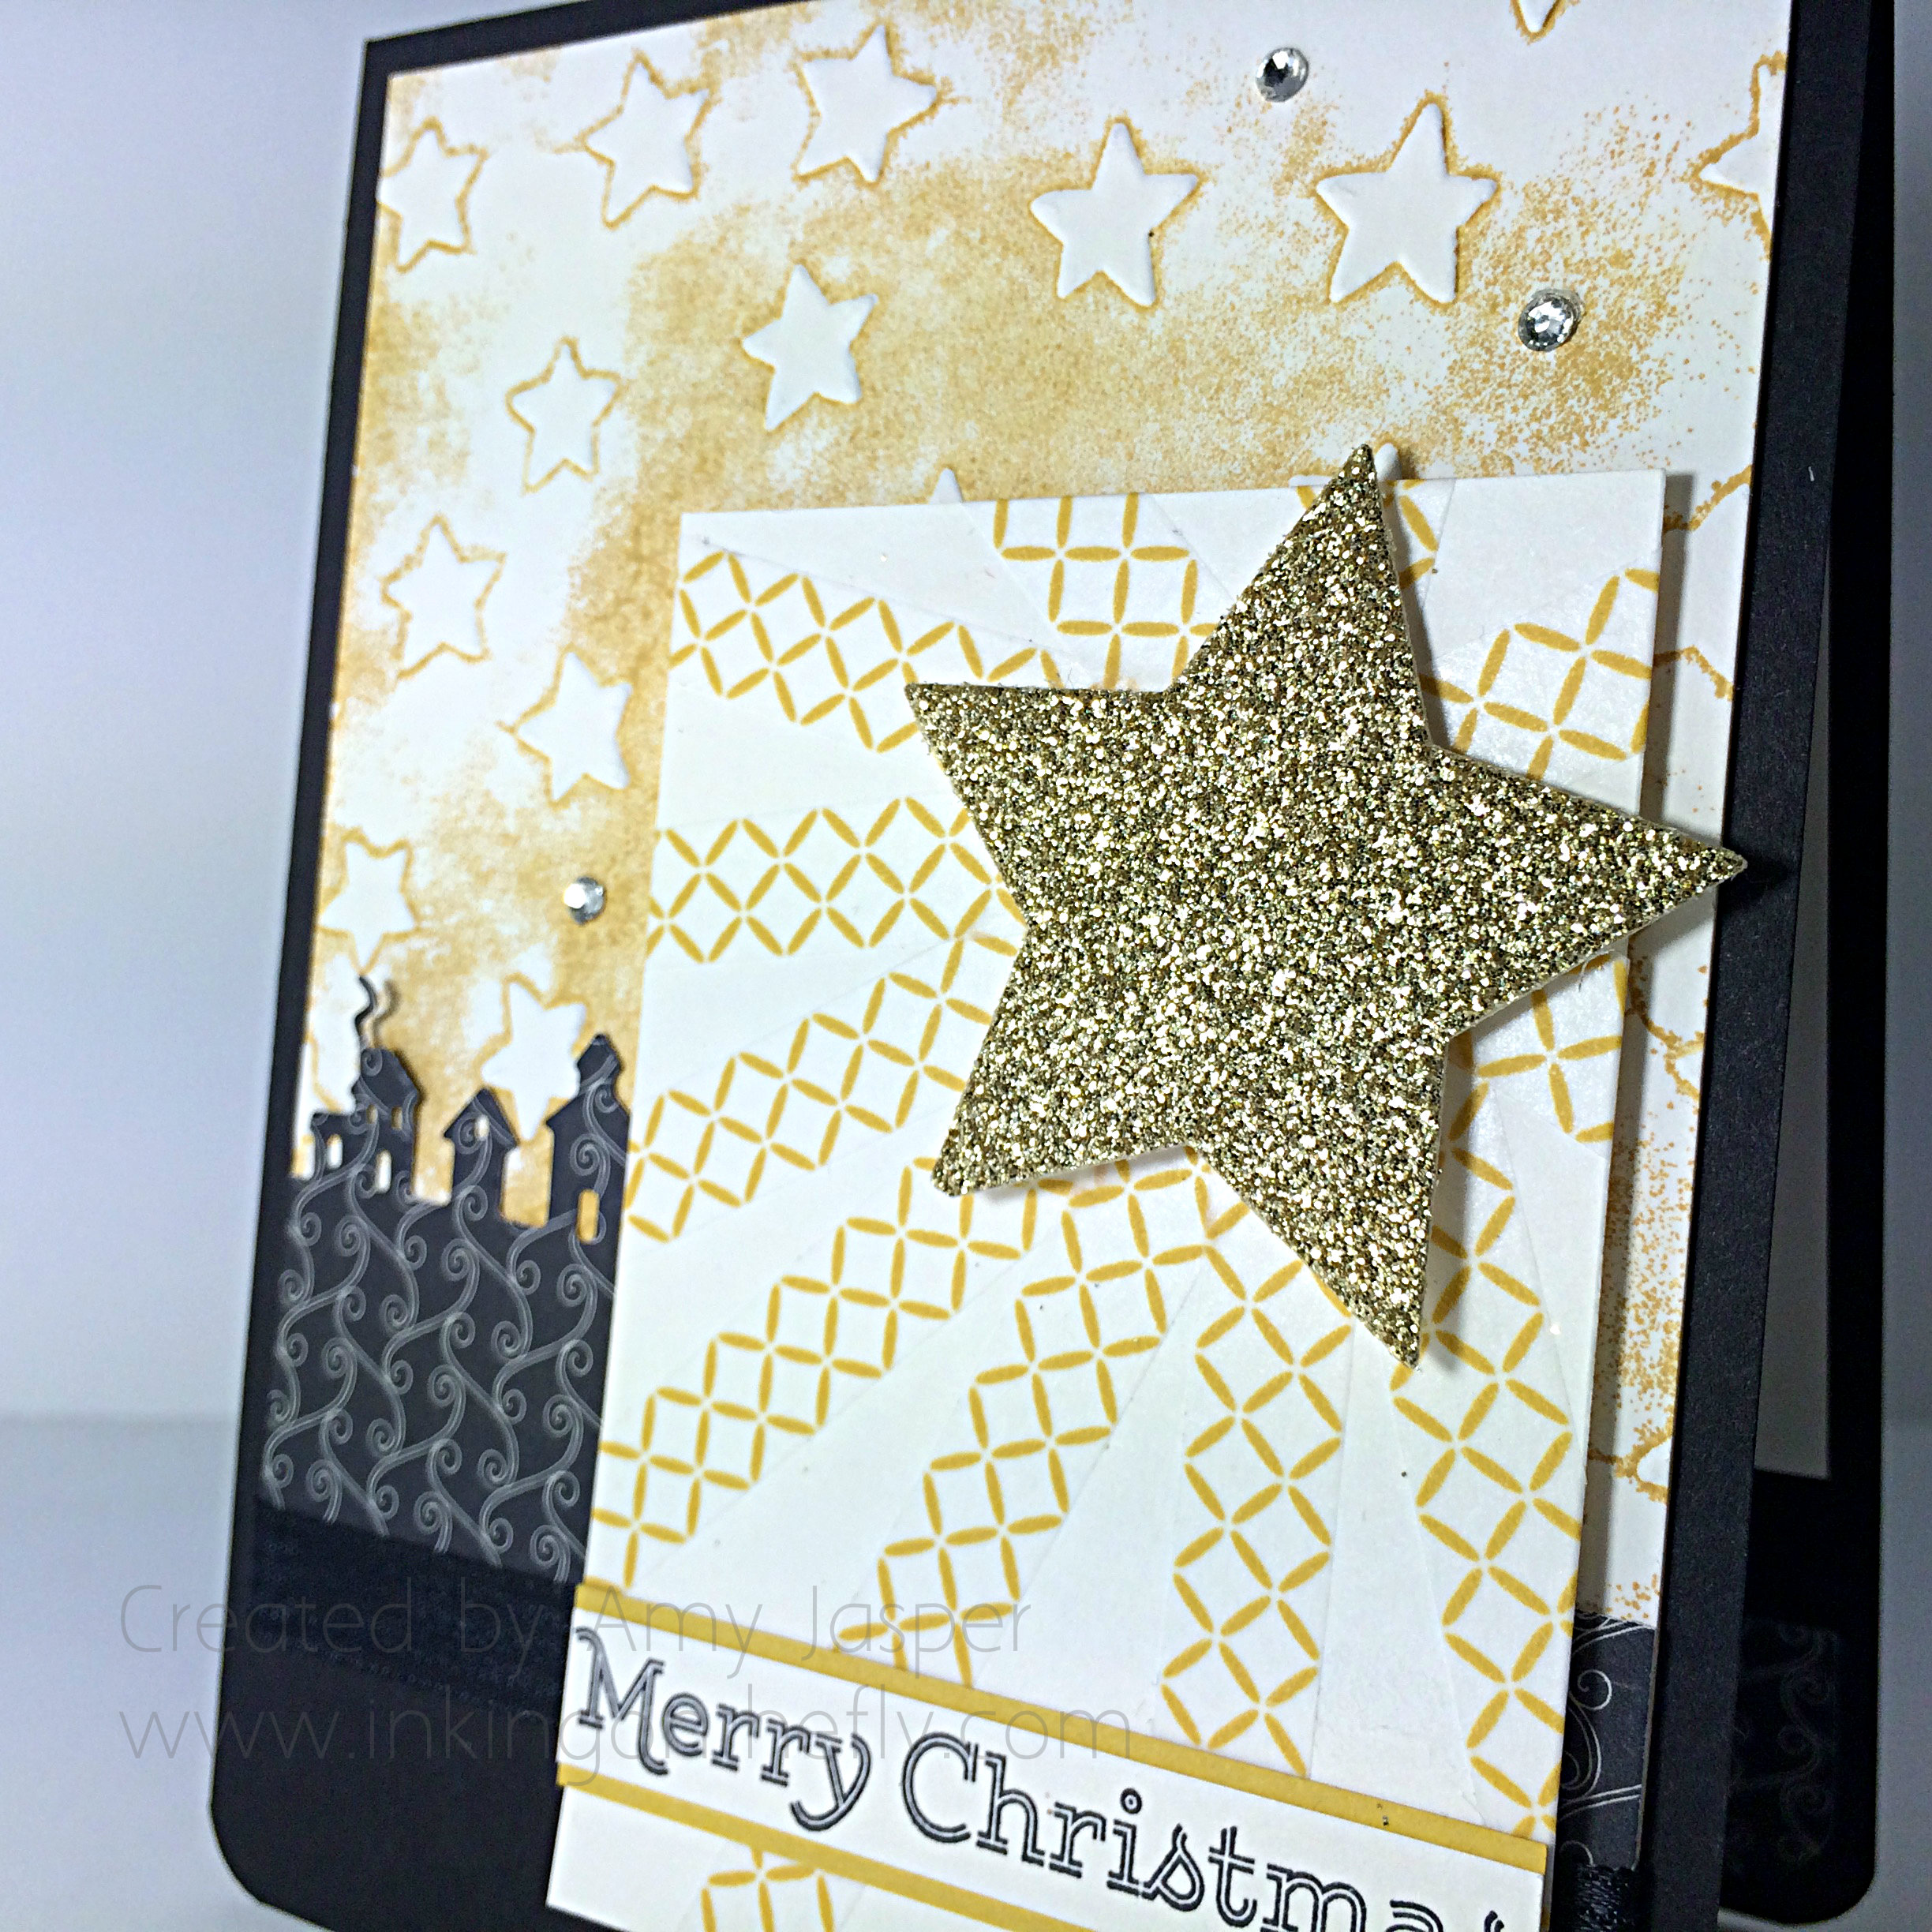 Under a Starry Sky by Amy Jasper www.inkingonthefly.com - Sleighride Edgelits, Star Embossing Folder from Stampin' Up